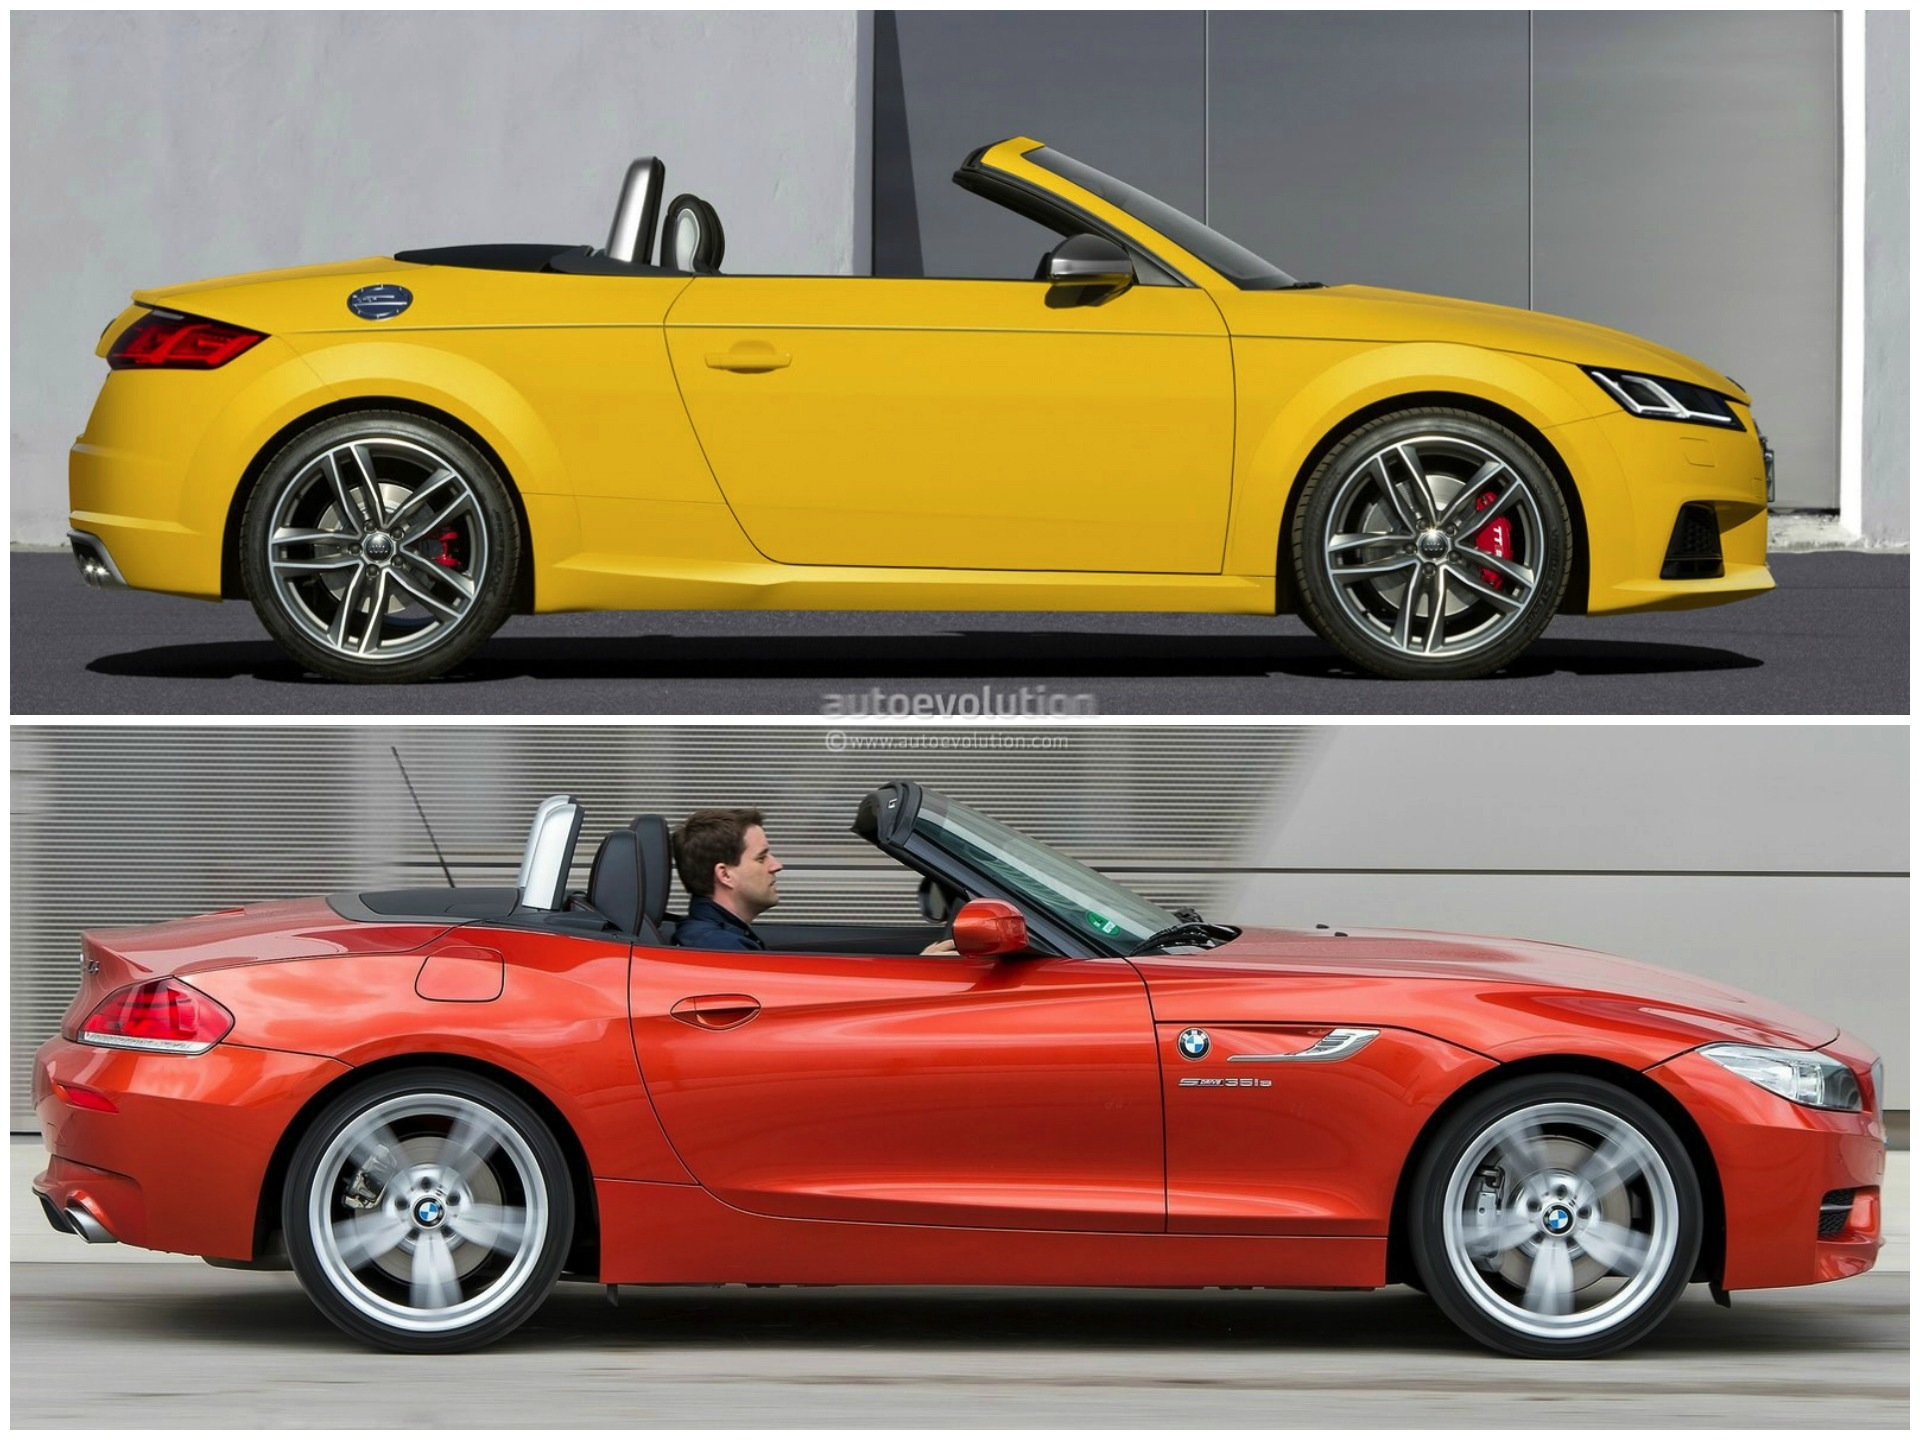 2014 BMW Z4 vs 2015 Audi TT Roadster - photo gallery